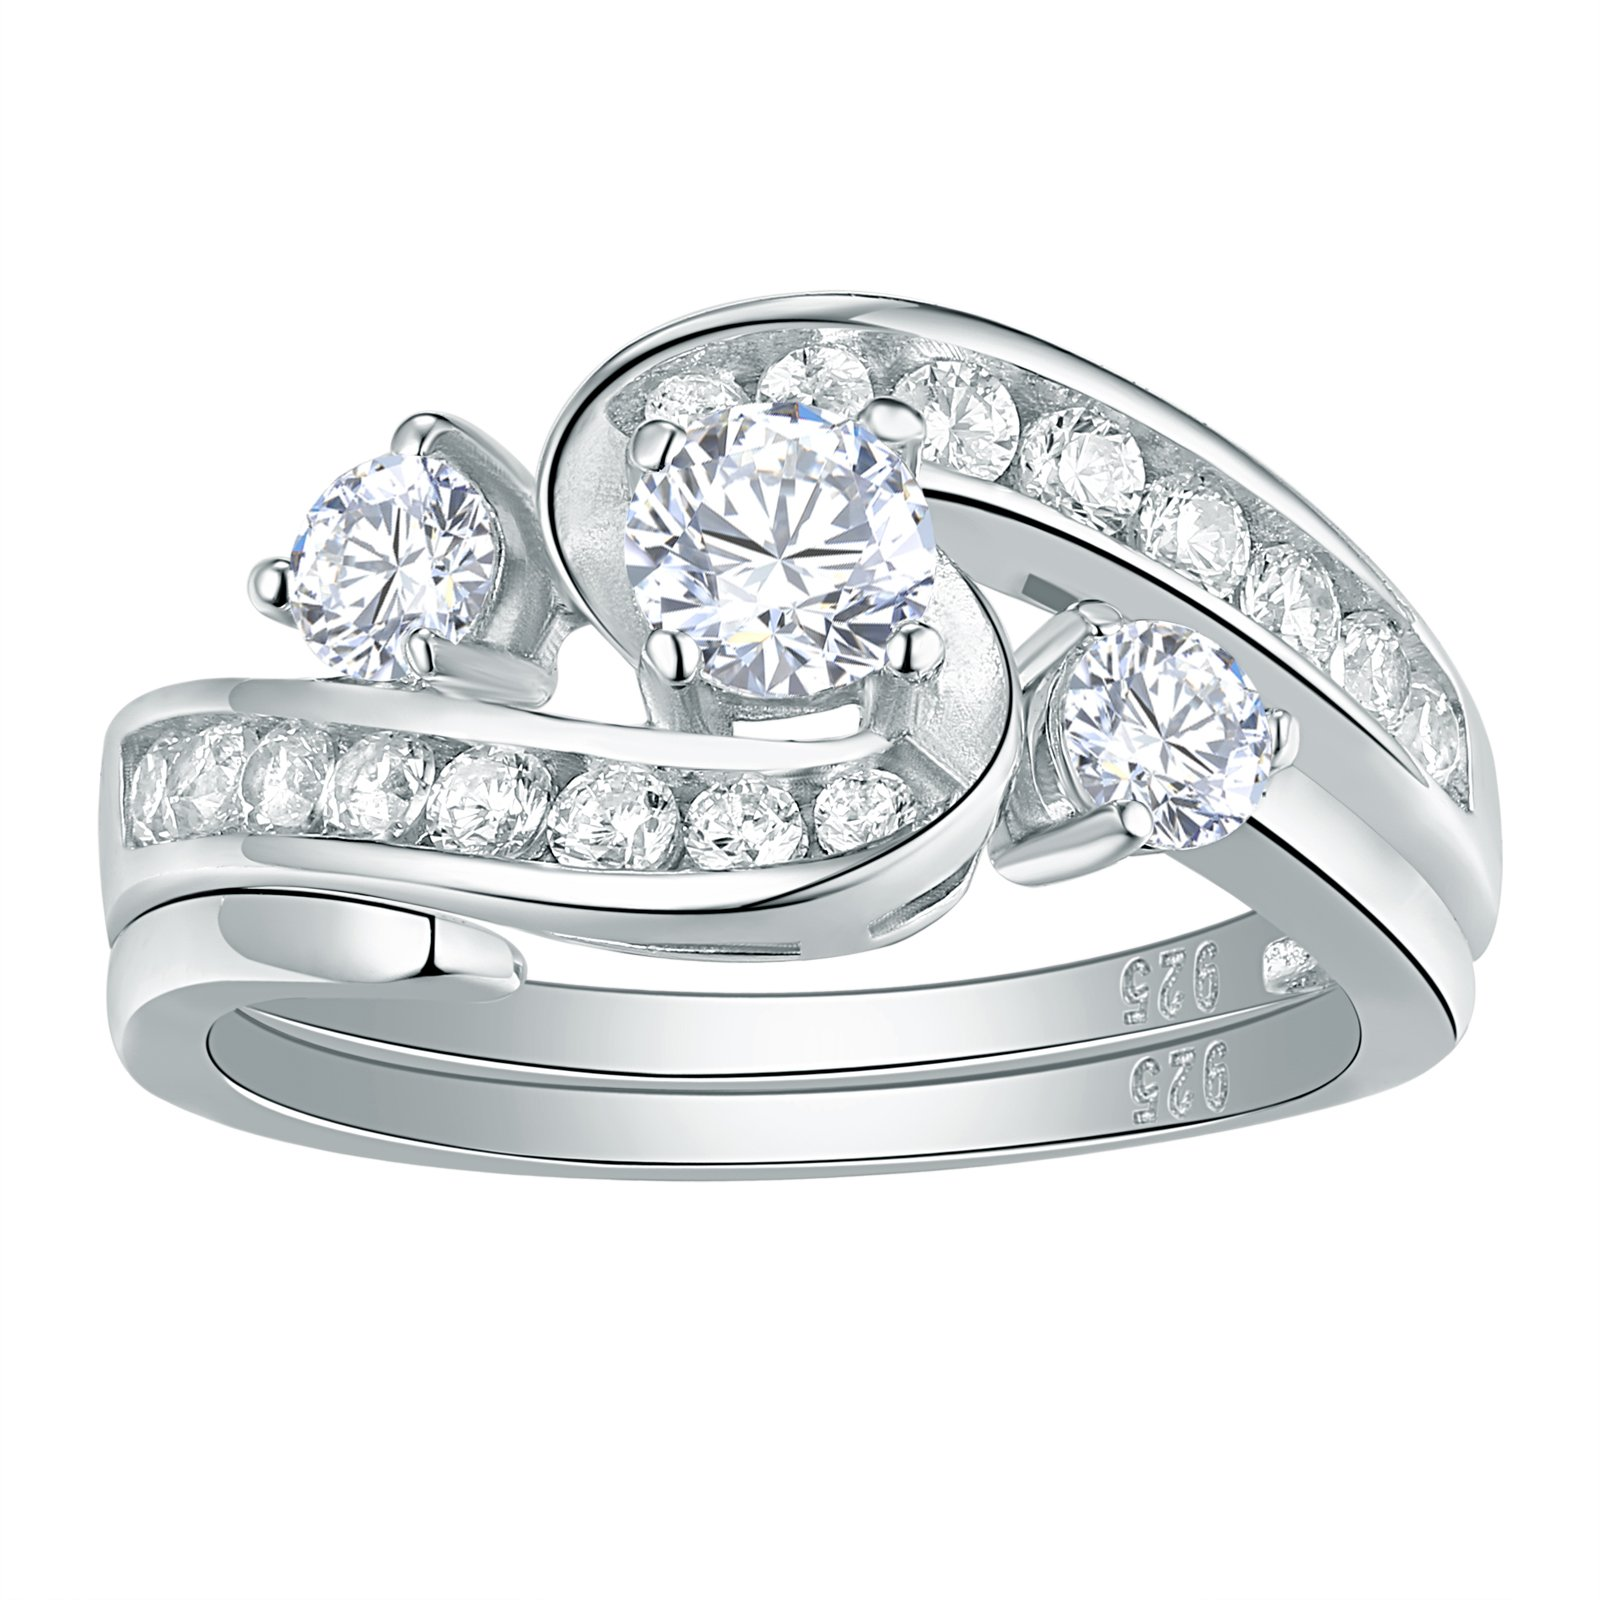 Newshe Sparkle 2ct AAA Cz 925 Sterling Silver Engagement Band Wedding Ring Set For Woman Size 7